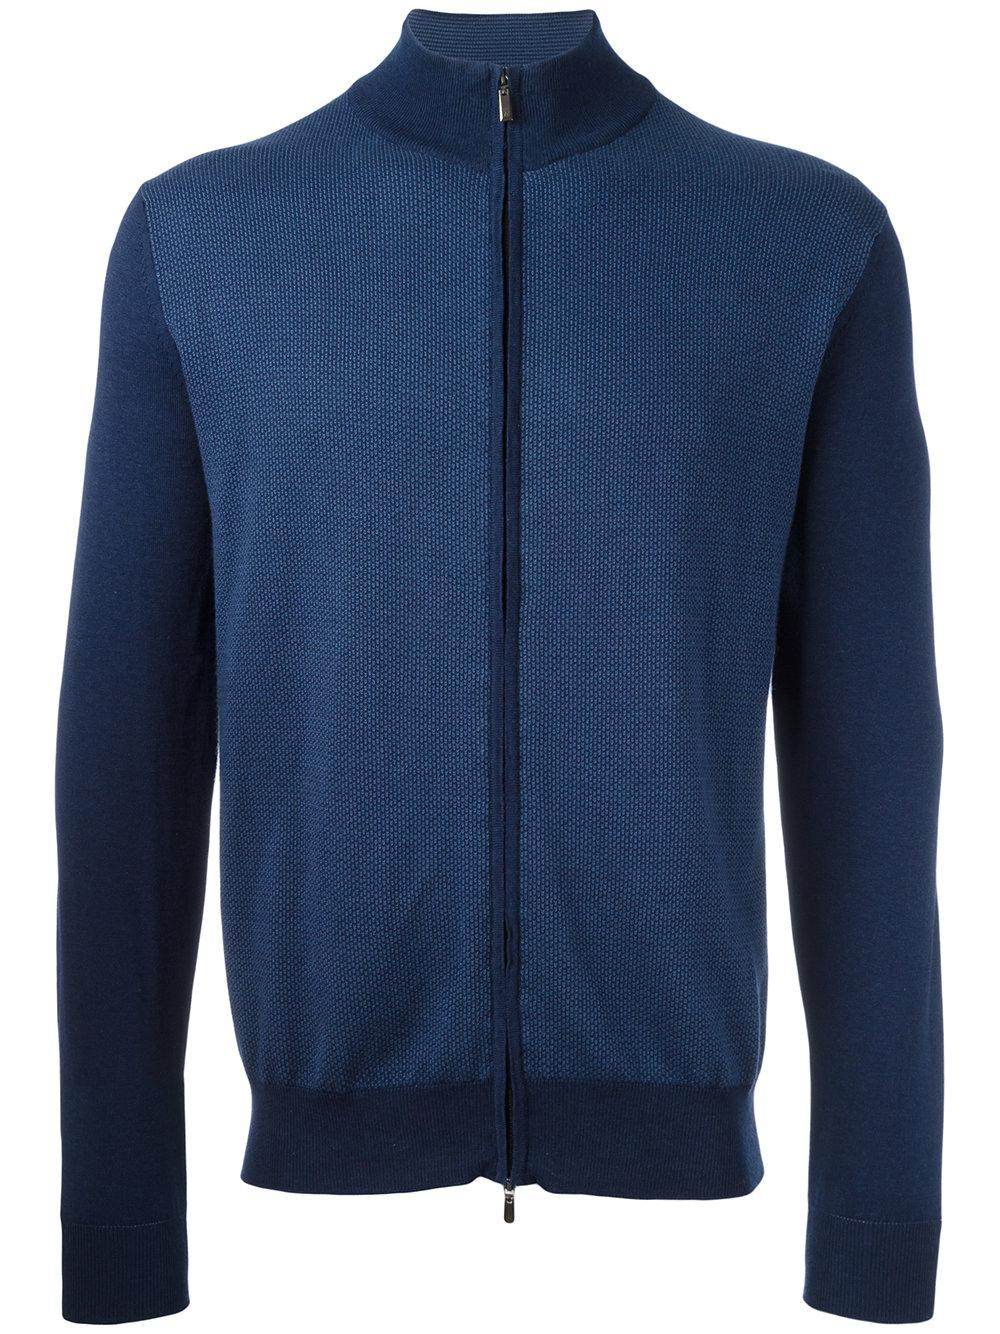 Enjoy free shipping and easy returns every day at Kohl's. Find great deals on Mens Zip Neck Sweaters at Kohl's today!